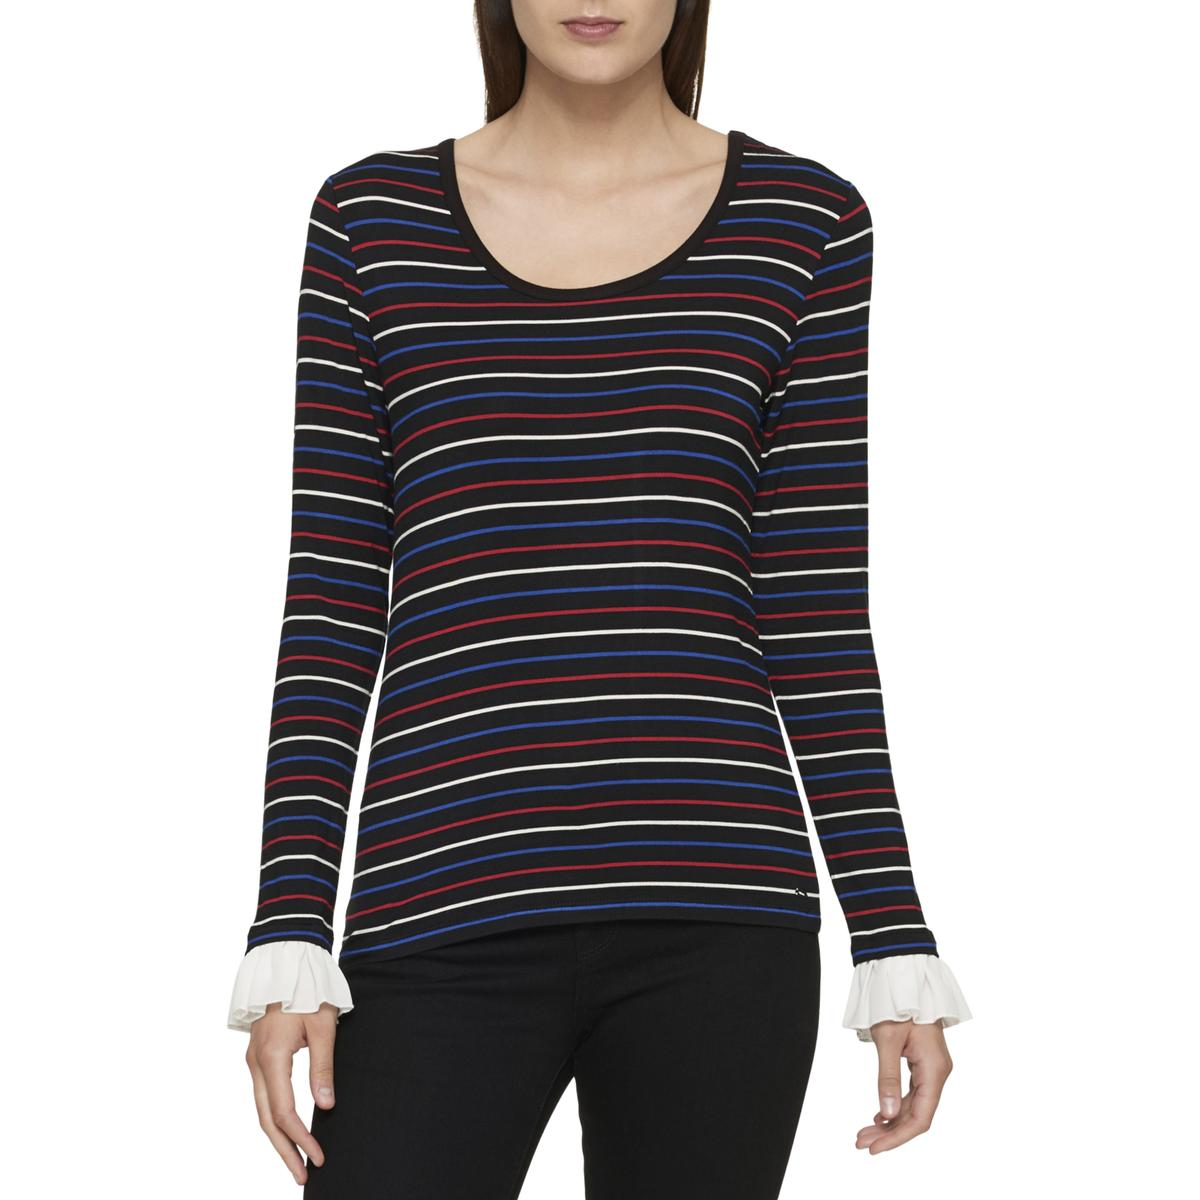 e80162c4d Details about Tommy Hilfiger Womens Striped Ruffle Sleeve Casual Top Shirt  BHFO 7628